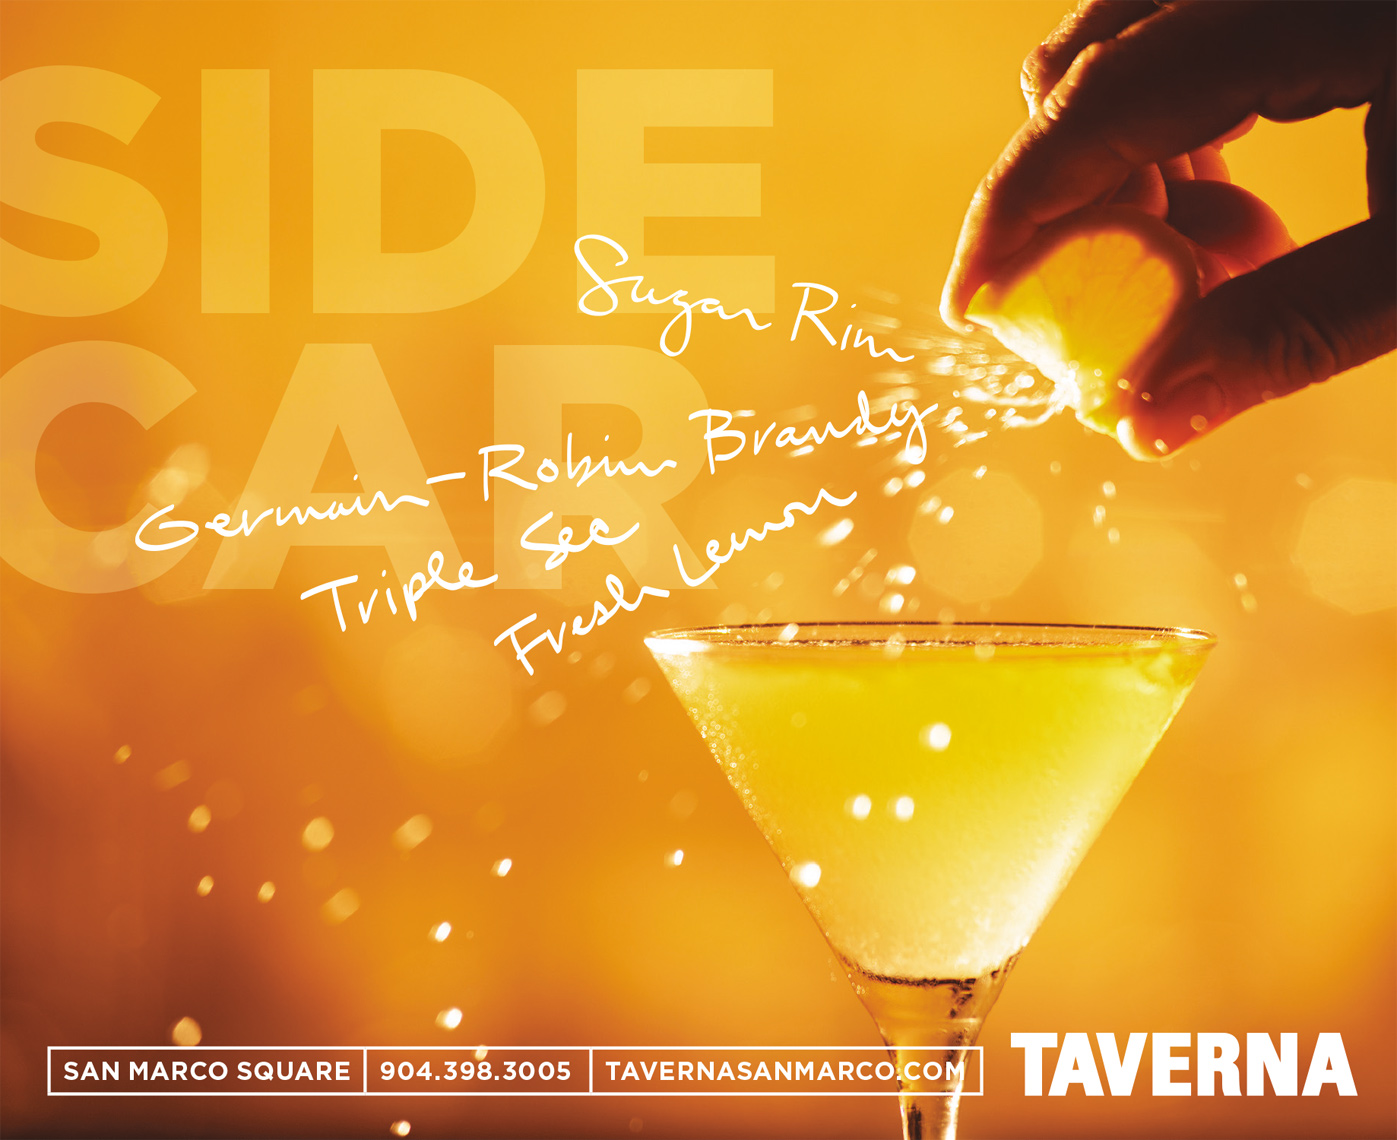 Food, Editorial, Advertising and Corporate Studio Location Photography Jacksonville, Florida Taverna Restaurant Cocktail Campaign